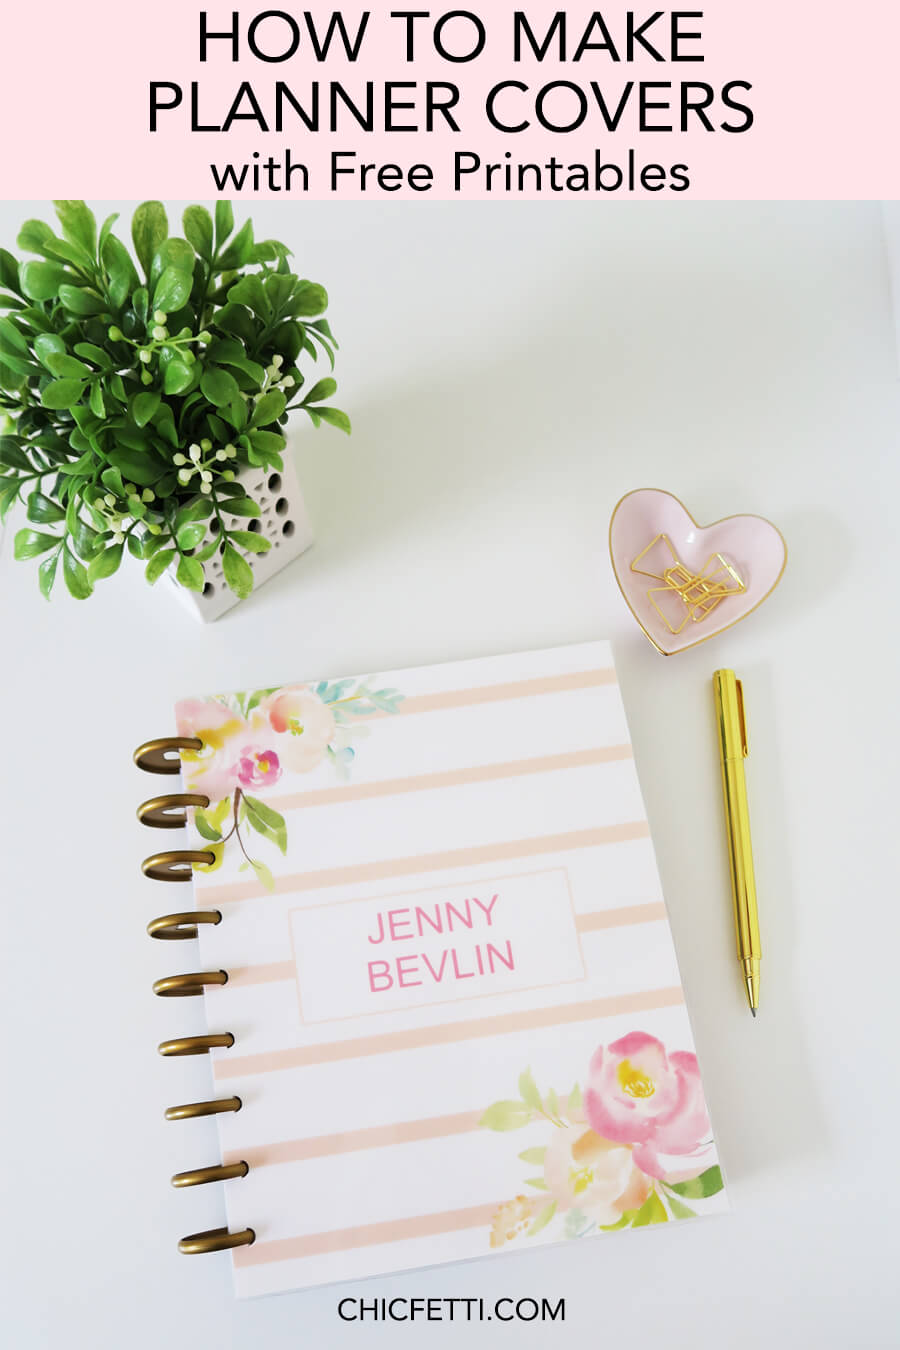 How to make planner covers - Learn how to make your own planner covers. Make both Erin Condren planner covers and Happy Planner covers with our free printable planner covers #planner #plannerprintable #freeprintable #happyplanner #erincondren